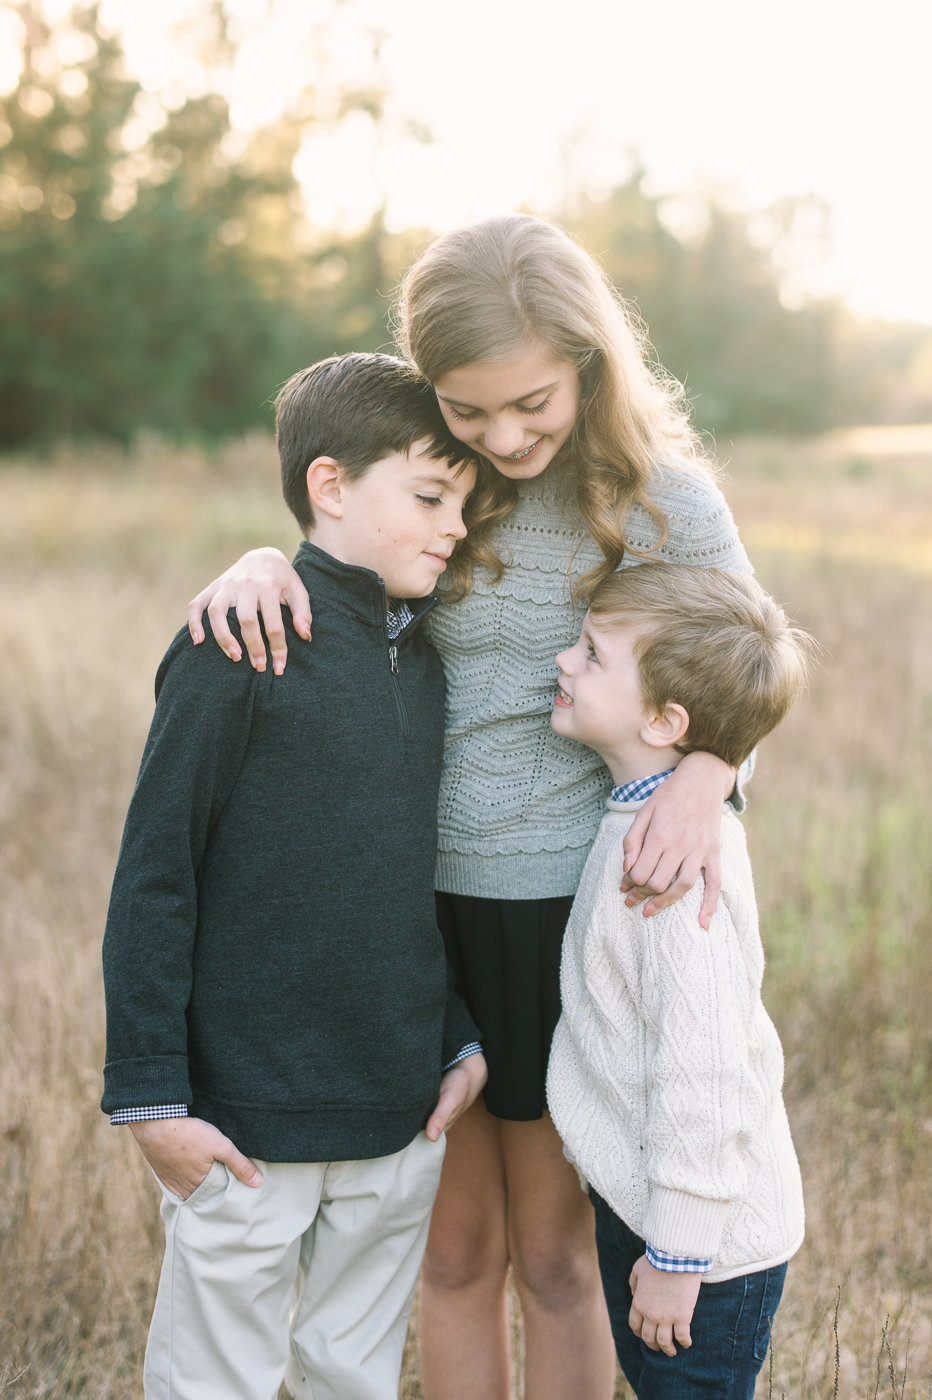 thewoodlands-family-portrait-photographer-11